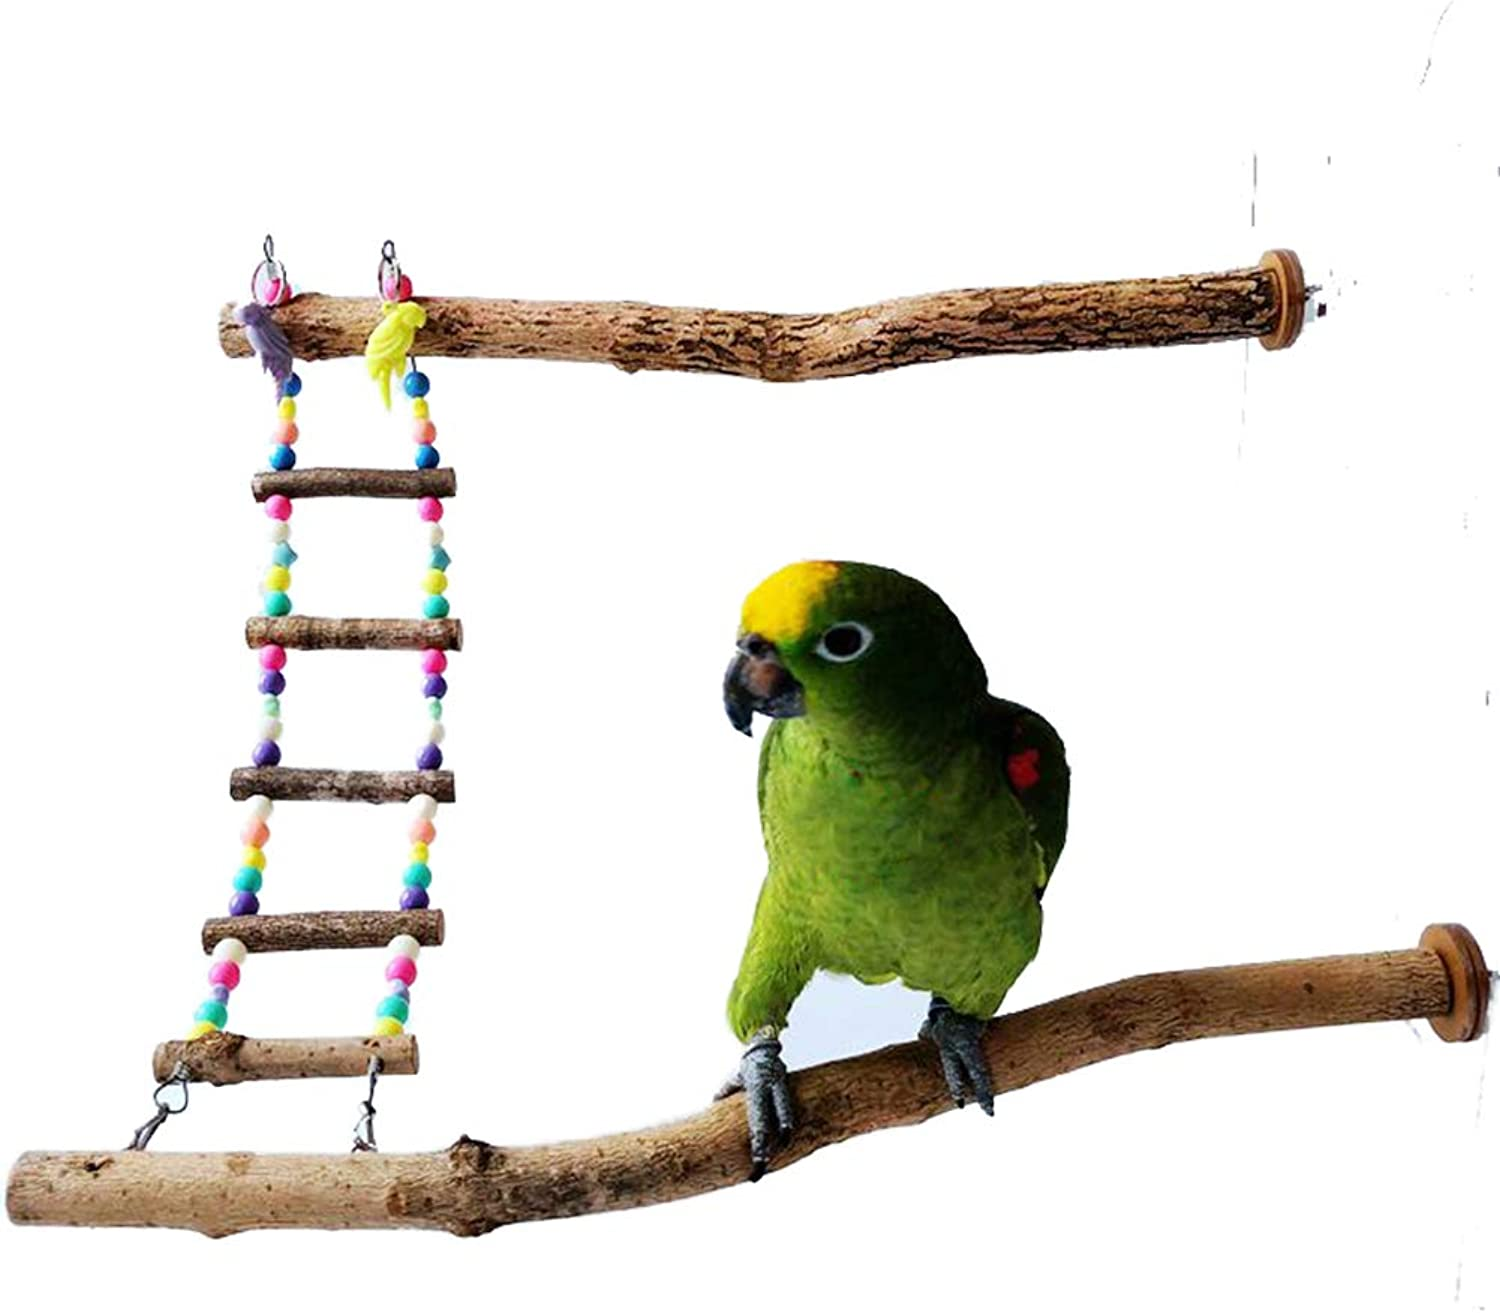 Bonaweite Bird Parred Toys, Naturals Wood for Pet Trainning Playing, 2 Stand Bars + Ladder Set for Cockatiel Conure Parakeet